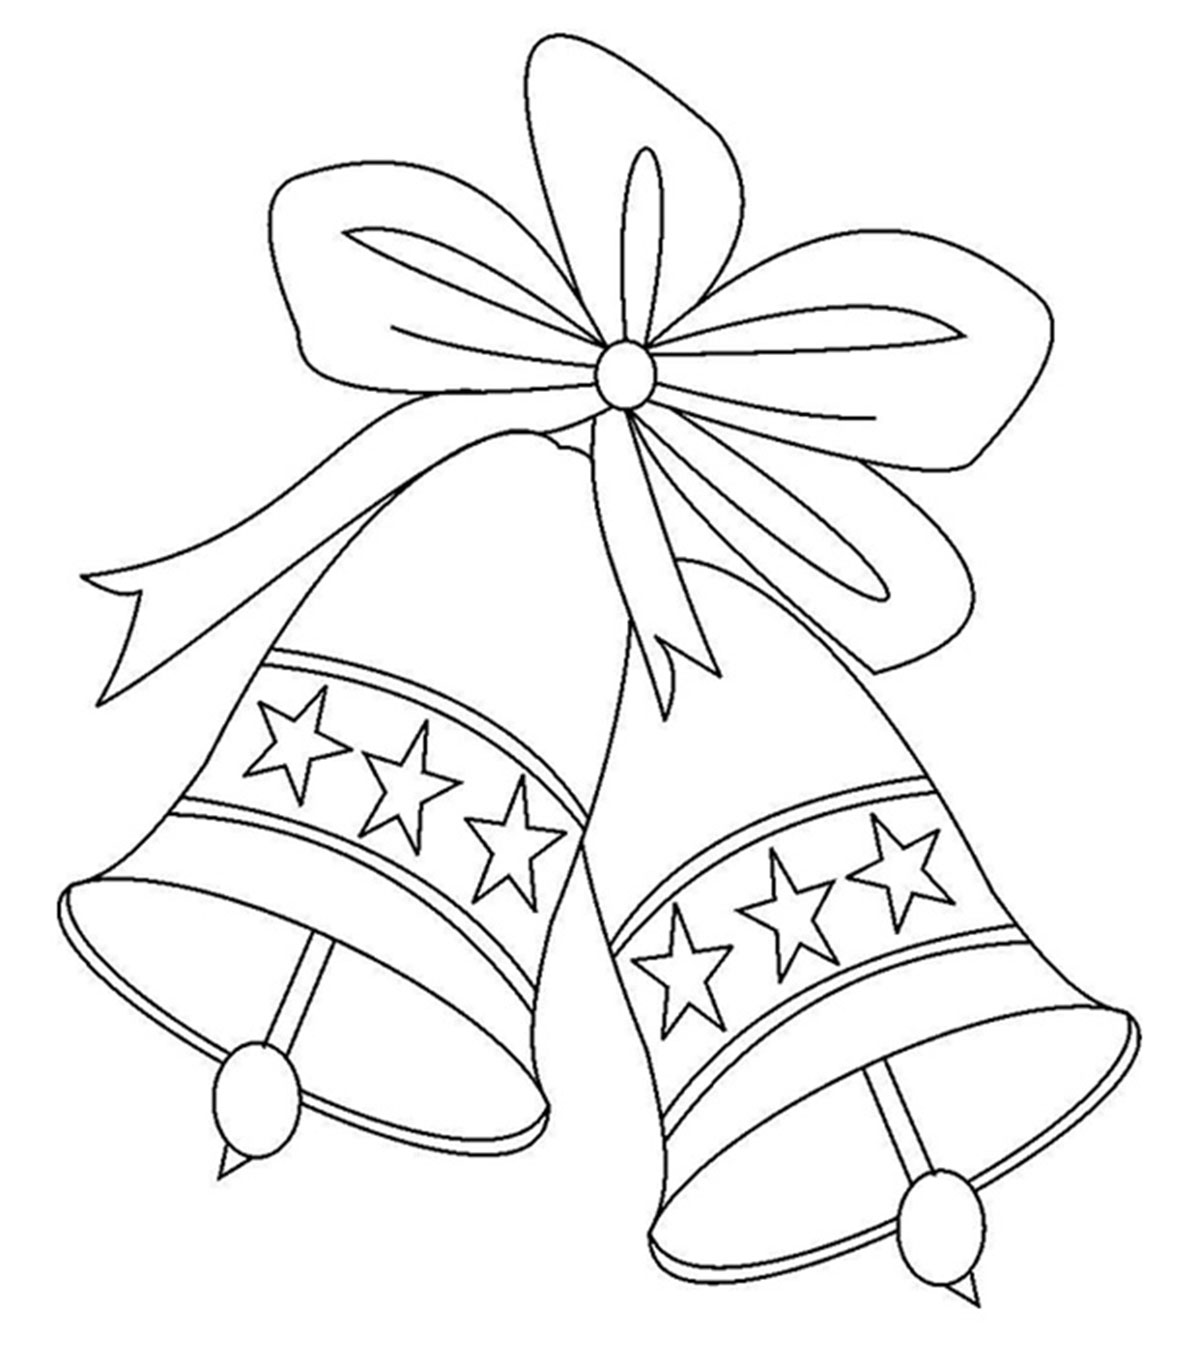 Holiday Coloring Pages - MomJunction